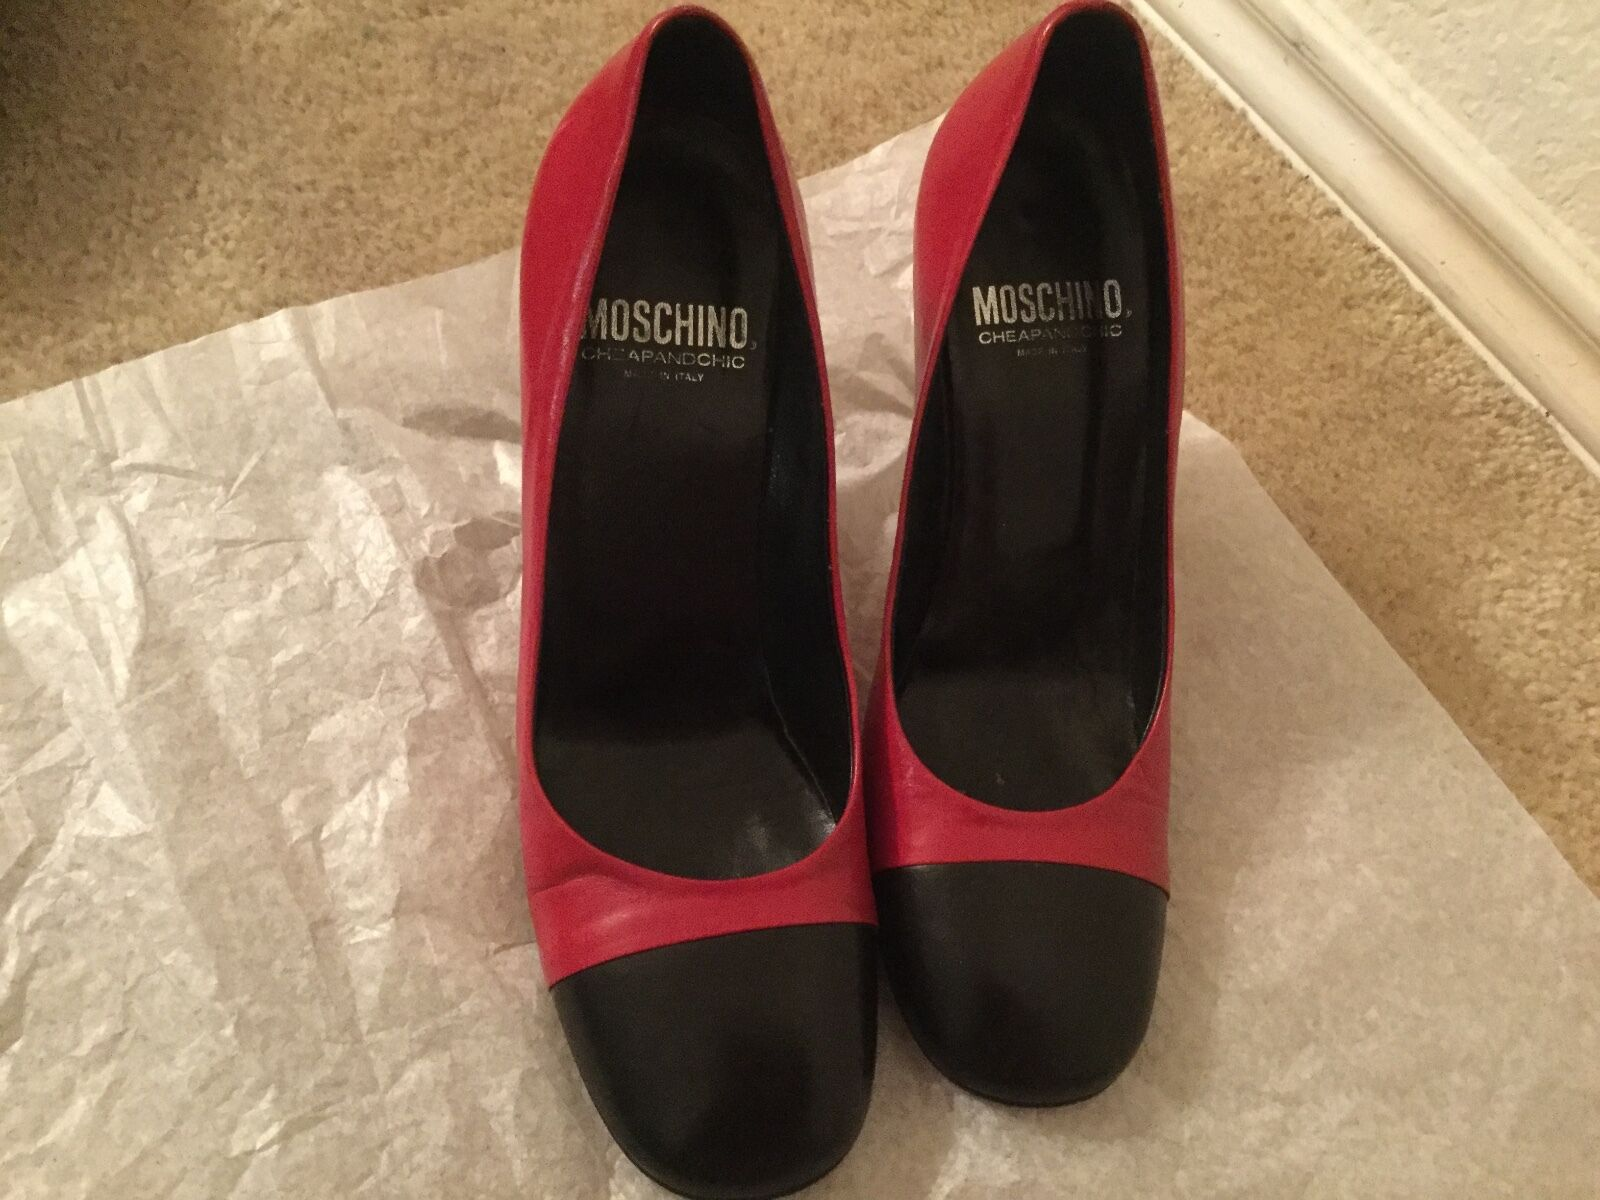 MOSCHINO RED/BLACK PATENT LEATHER  MID-HEEL SHOE SZ 36.5MADE 36.5MADE SZ IN ITALY f4b322